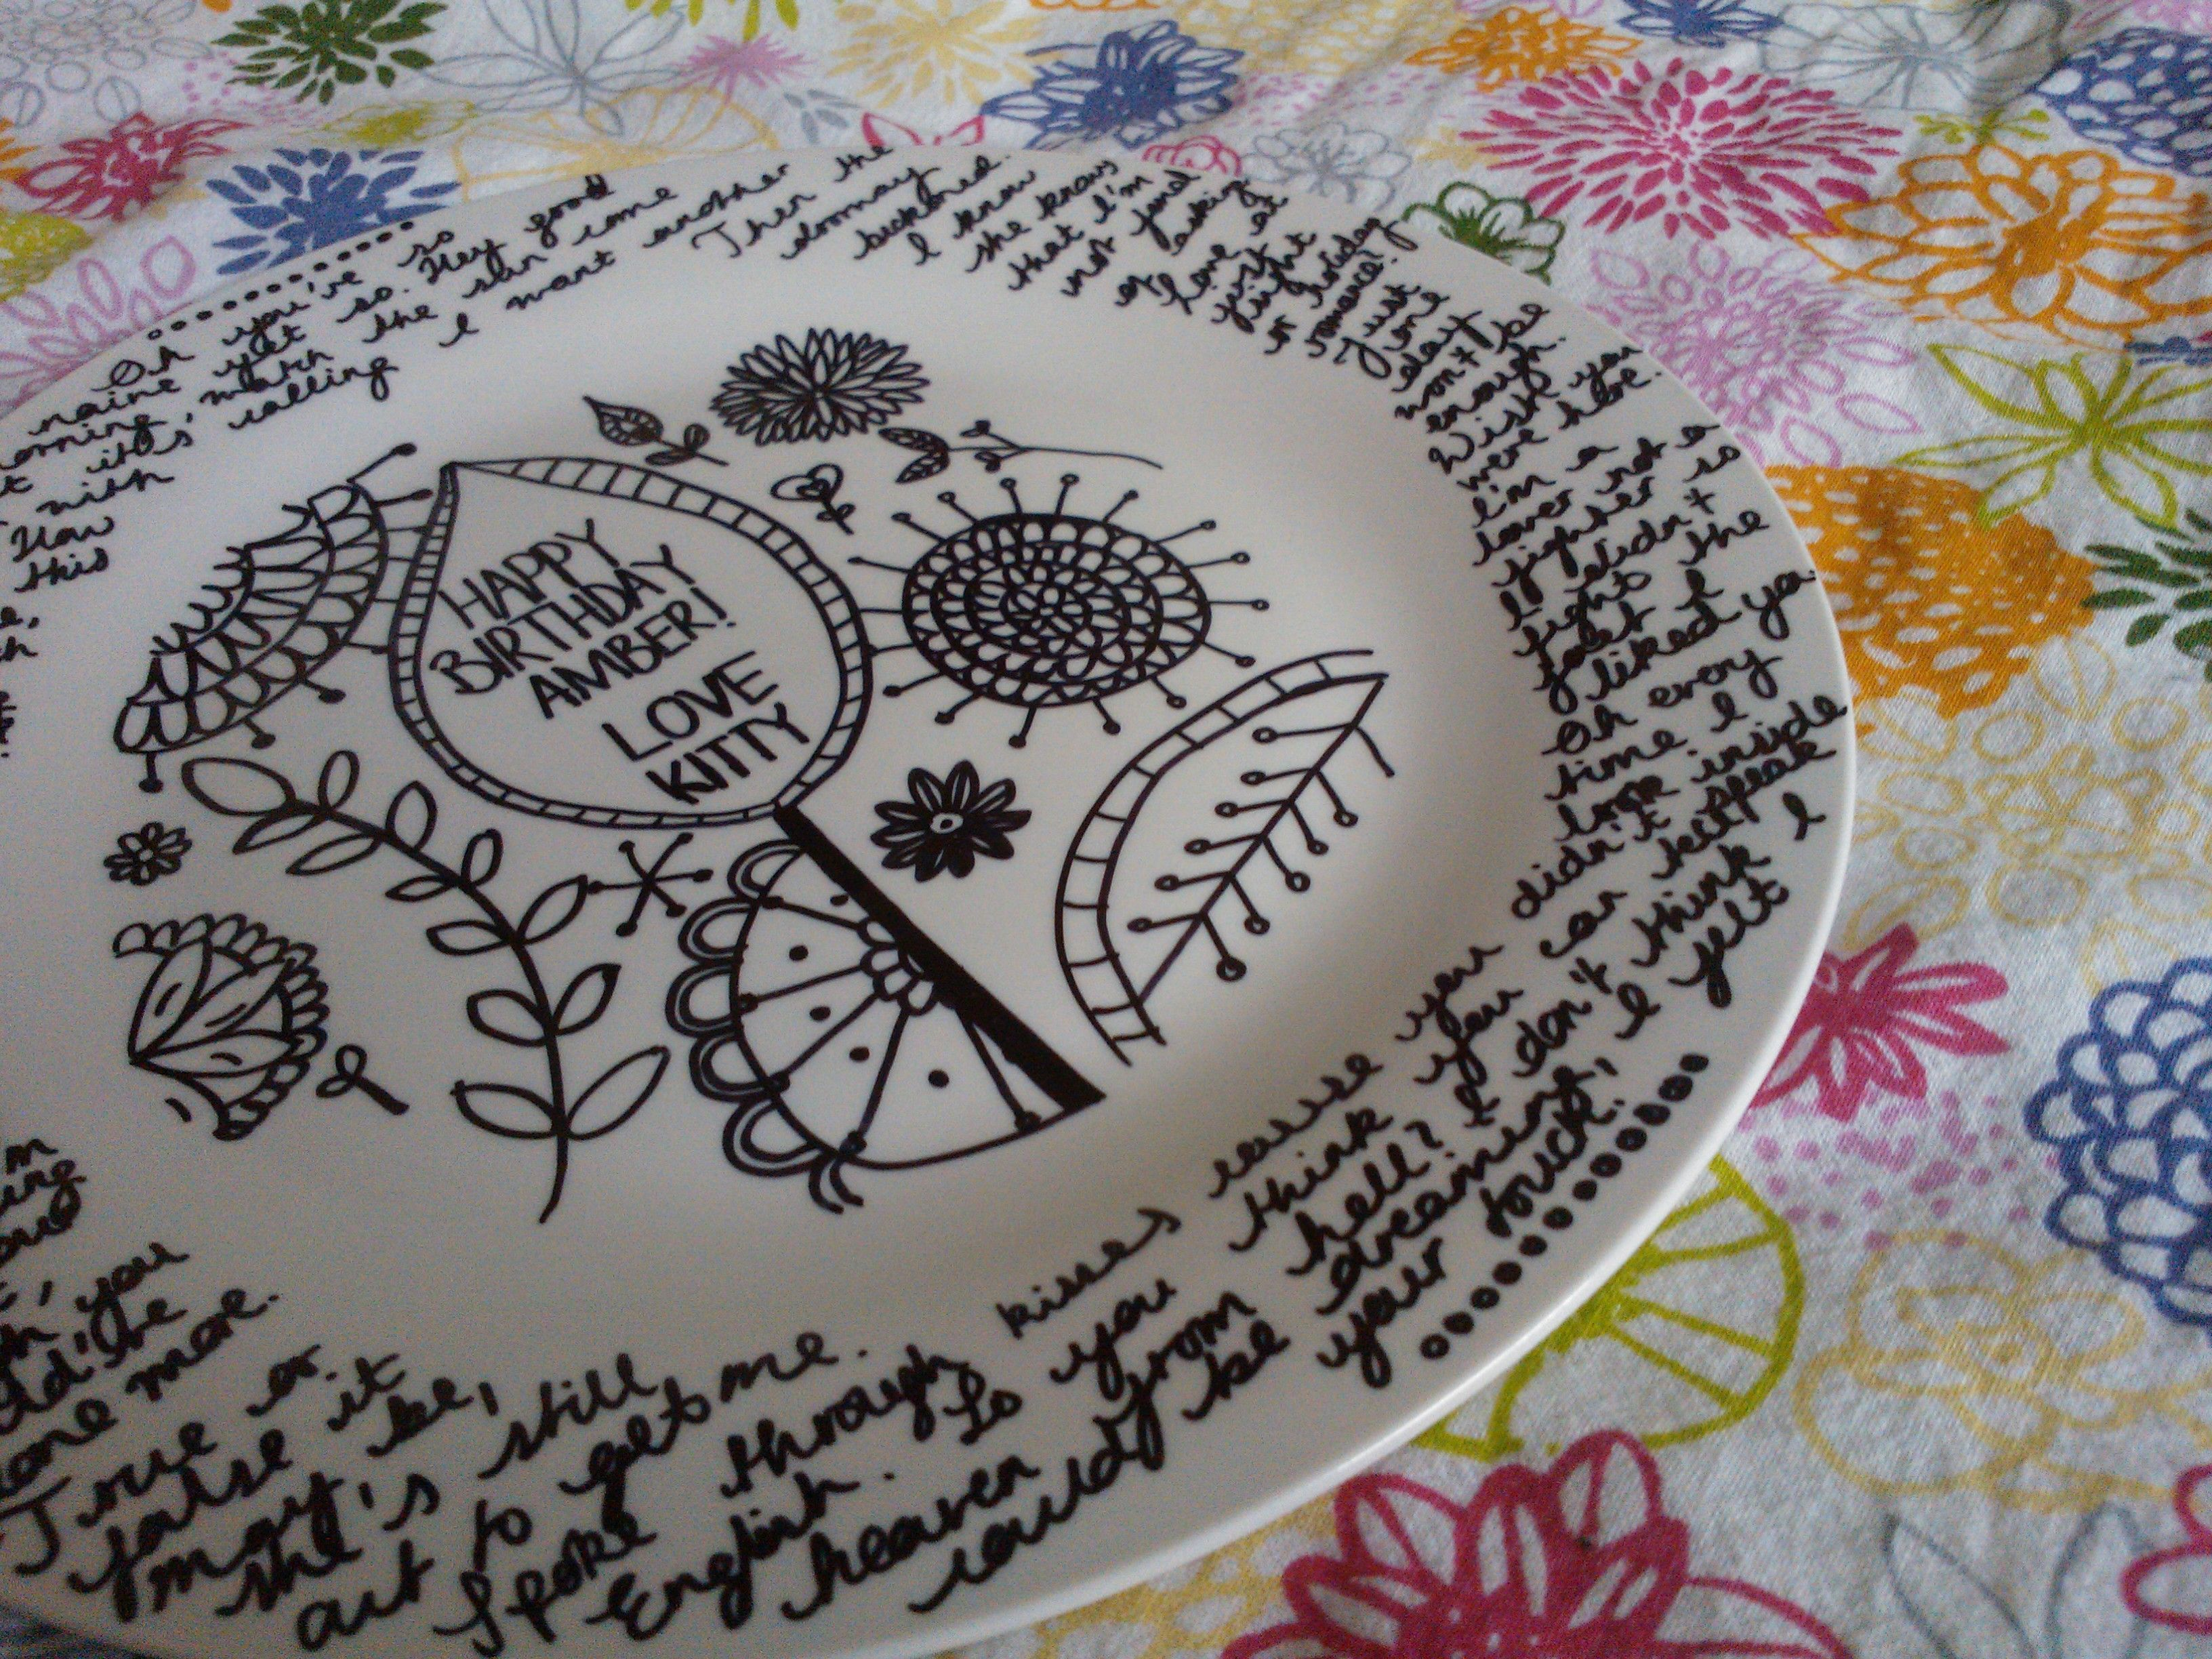 sharpie+plate+lyrics=thoughtful birthday present! #sharpieplates sharpie+plate+lyrics=thoughtful birthday present! #sharpieplates sharpie+plate+lyrics=thoughtful birthday present! #sharpieplates sharpie+plate+lyrics=thoughtful birthday present! #sharpieplates